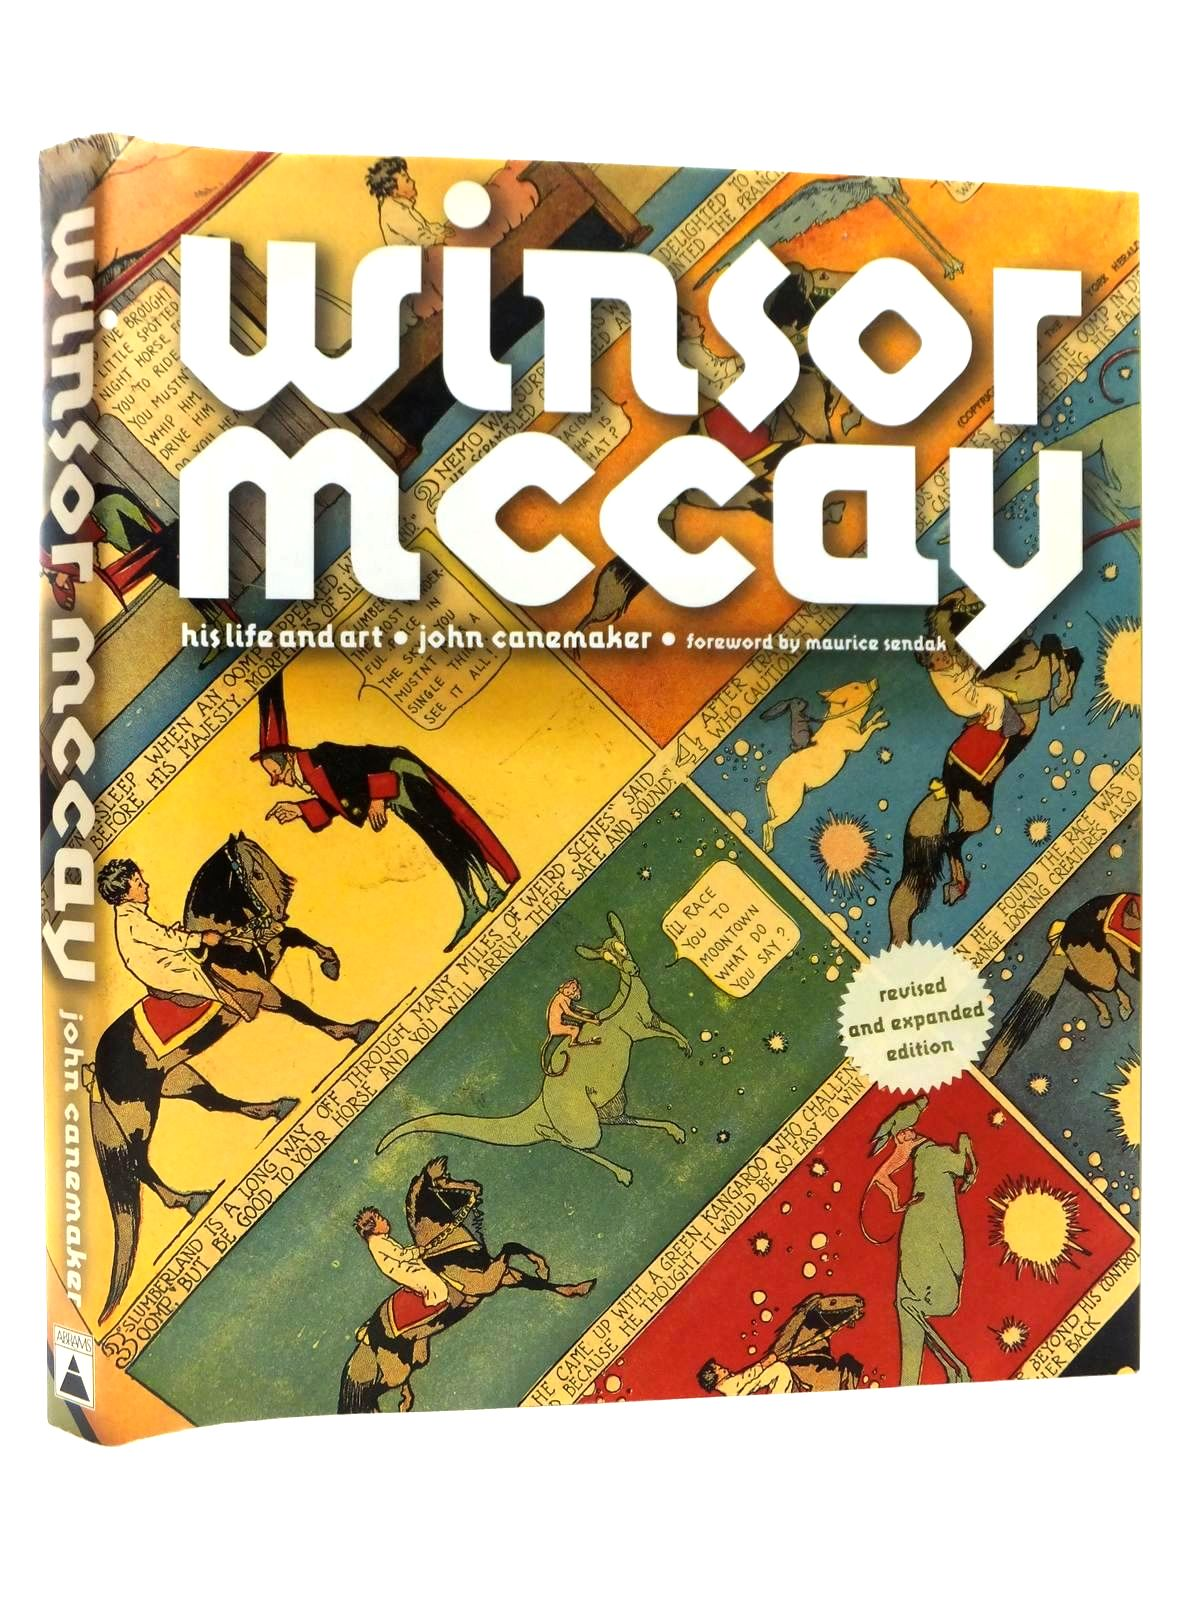 Photo of WINSOR MCCAY HIS LIFE AND ART written by Canemaker, John Sendak, Maurice illustrated by McCay, Winsor published by Harry N. Abrams, Inc. (STOCK CODE: 2122440)  for sale by Stella & Rose's Books